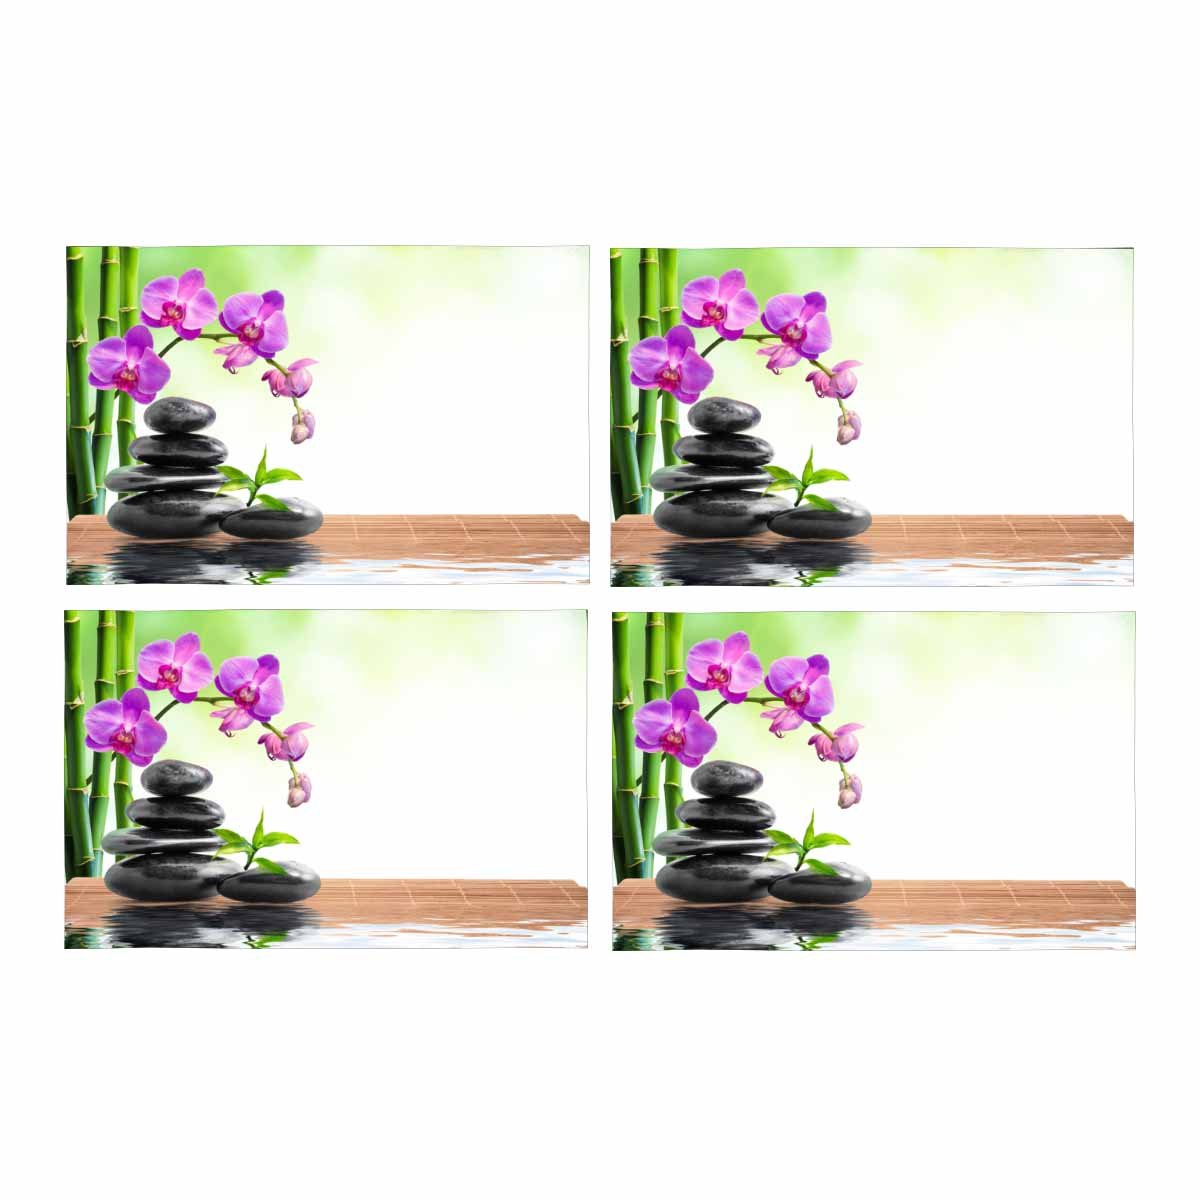 InterestPrint Spa Bamboo Orchids Water Placemat Table Mats Set of 4, Heat Resistant Place Mat for Dining Table Restaurant Home Kitchen Decor 12''x18''